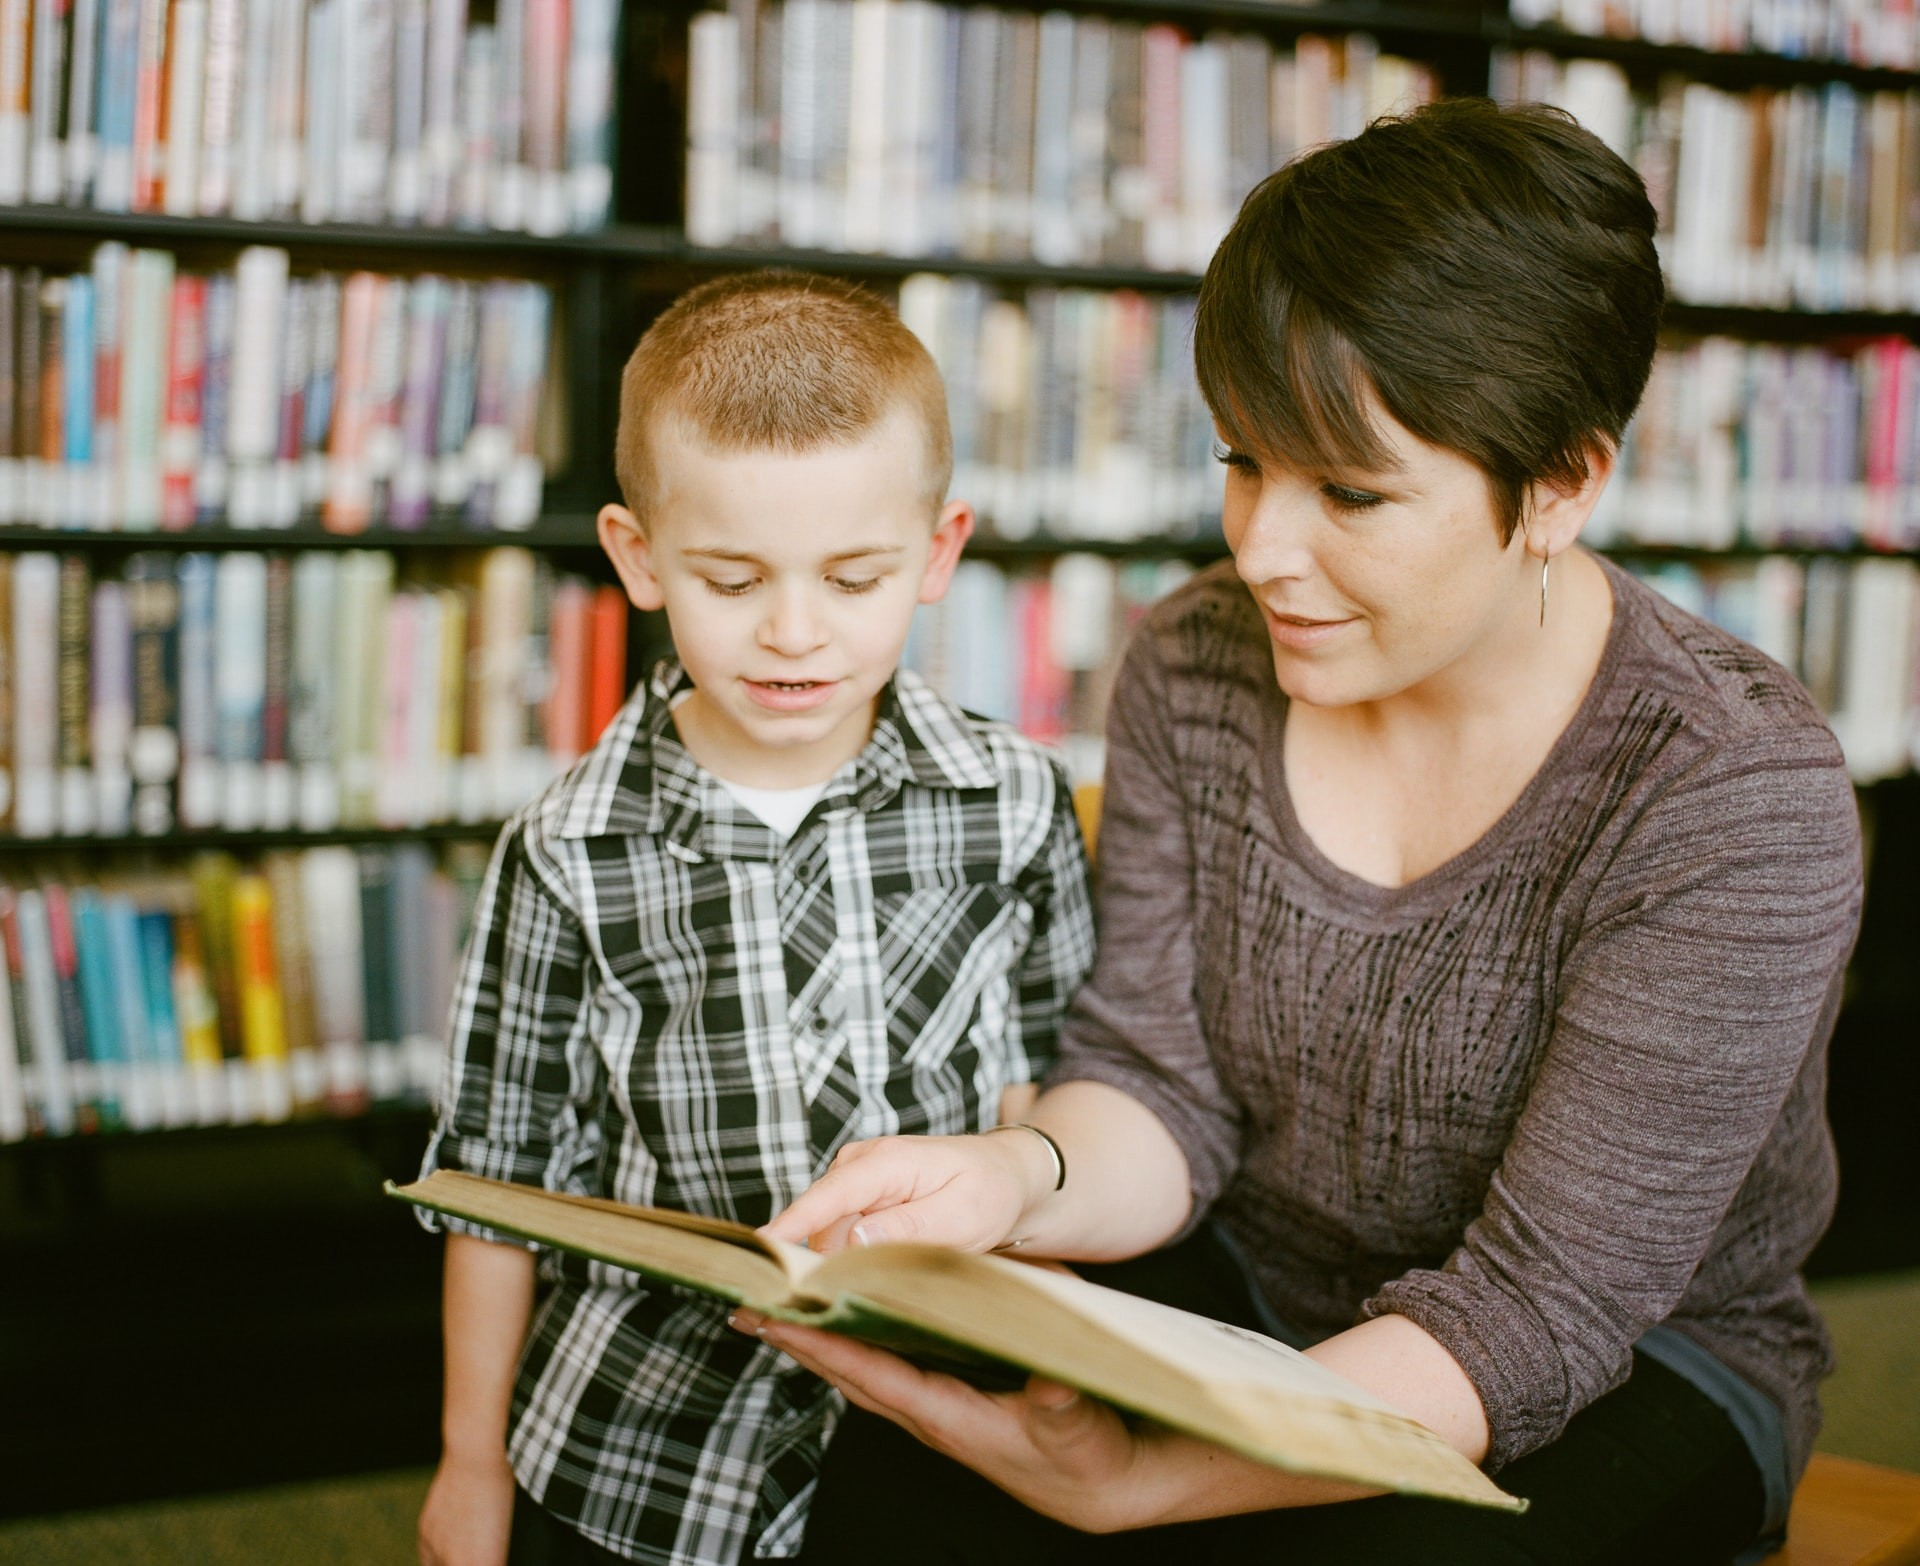 A teacher and student read a book together as part of a personalized learning plan.